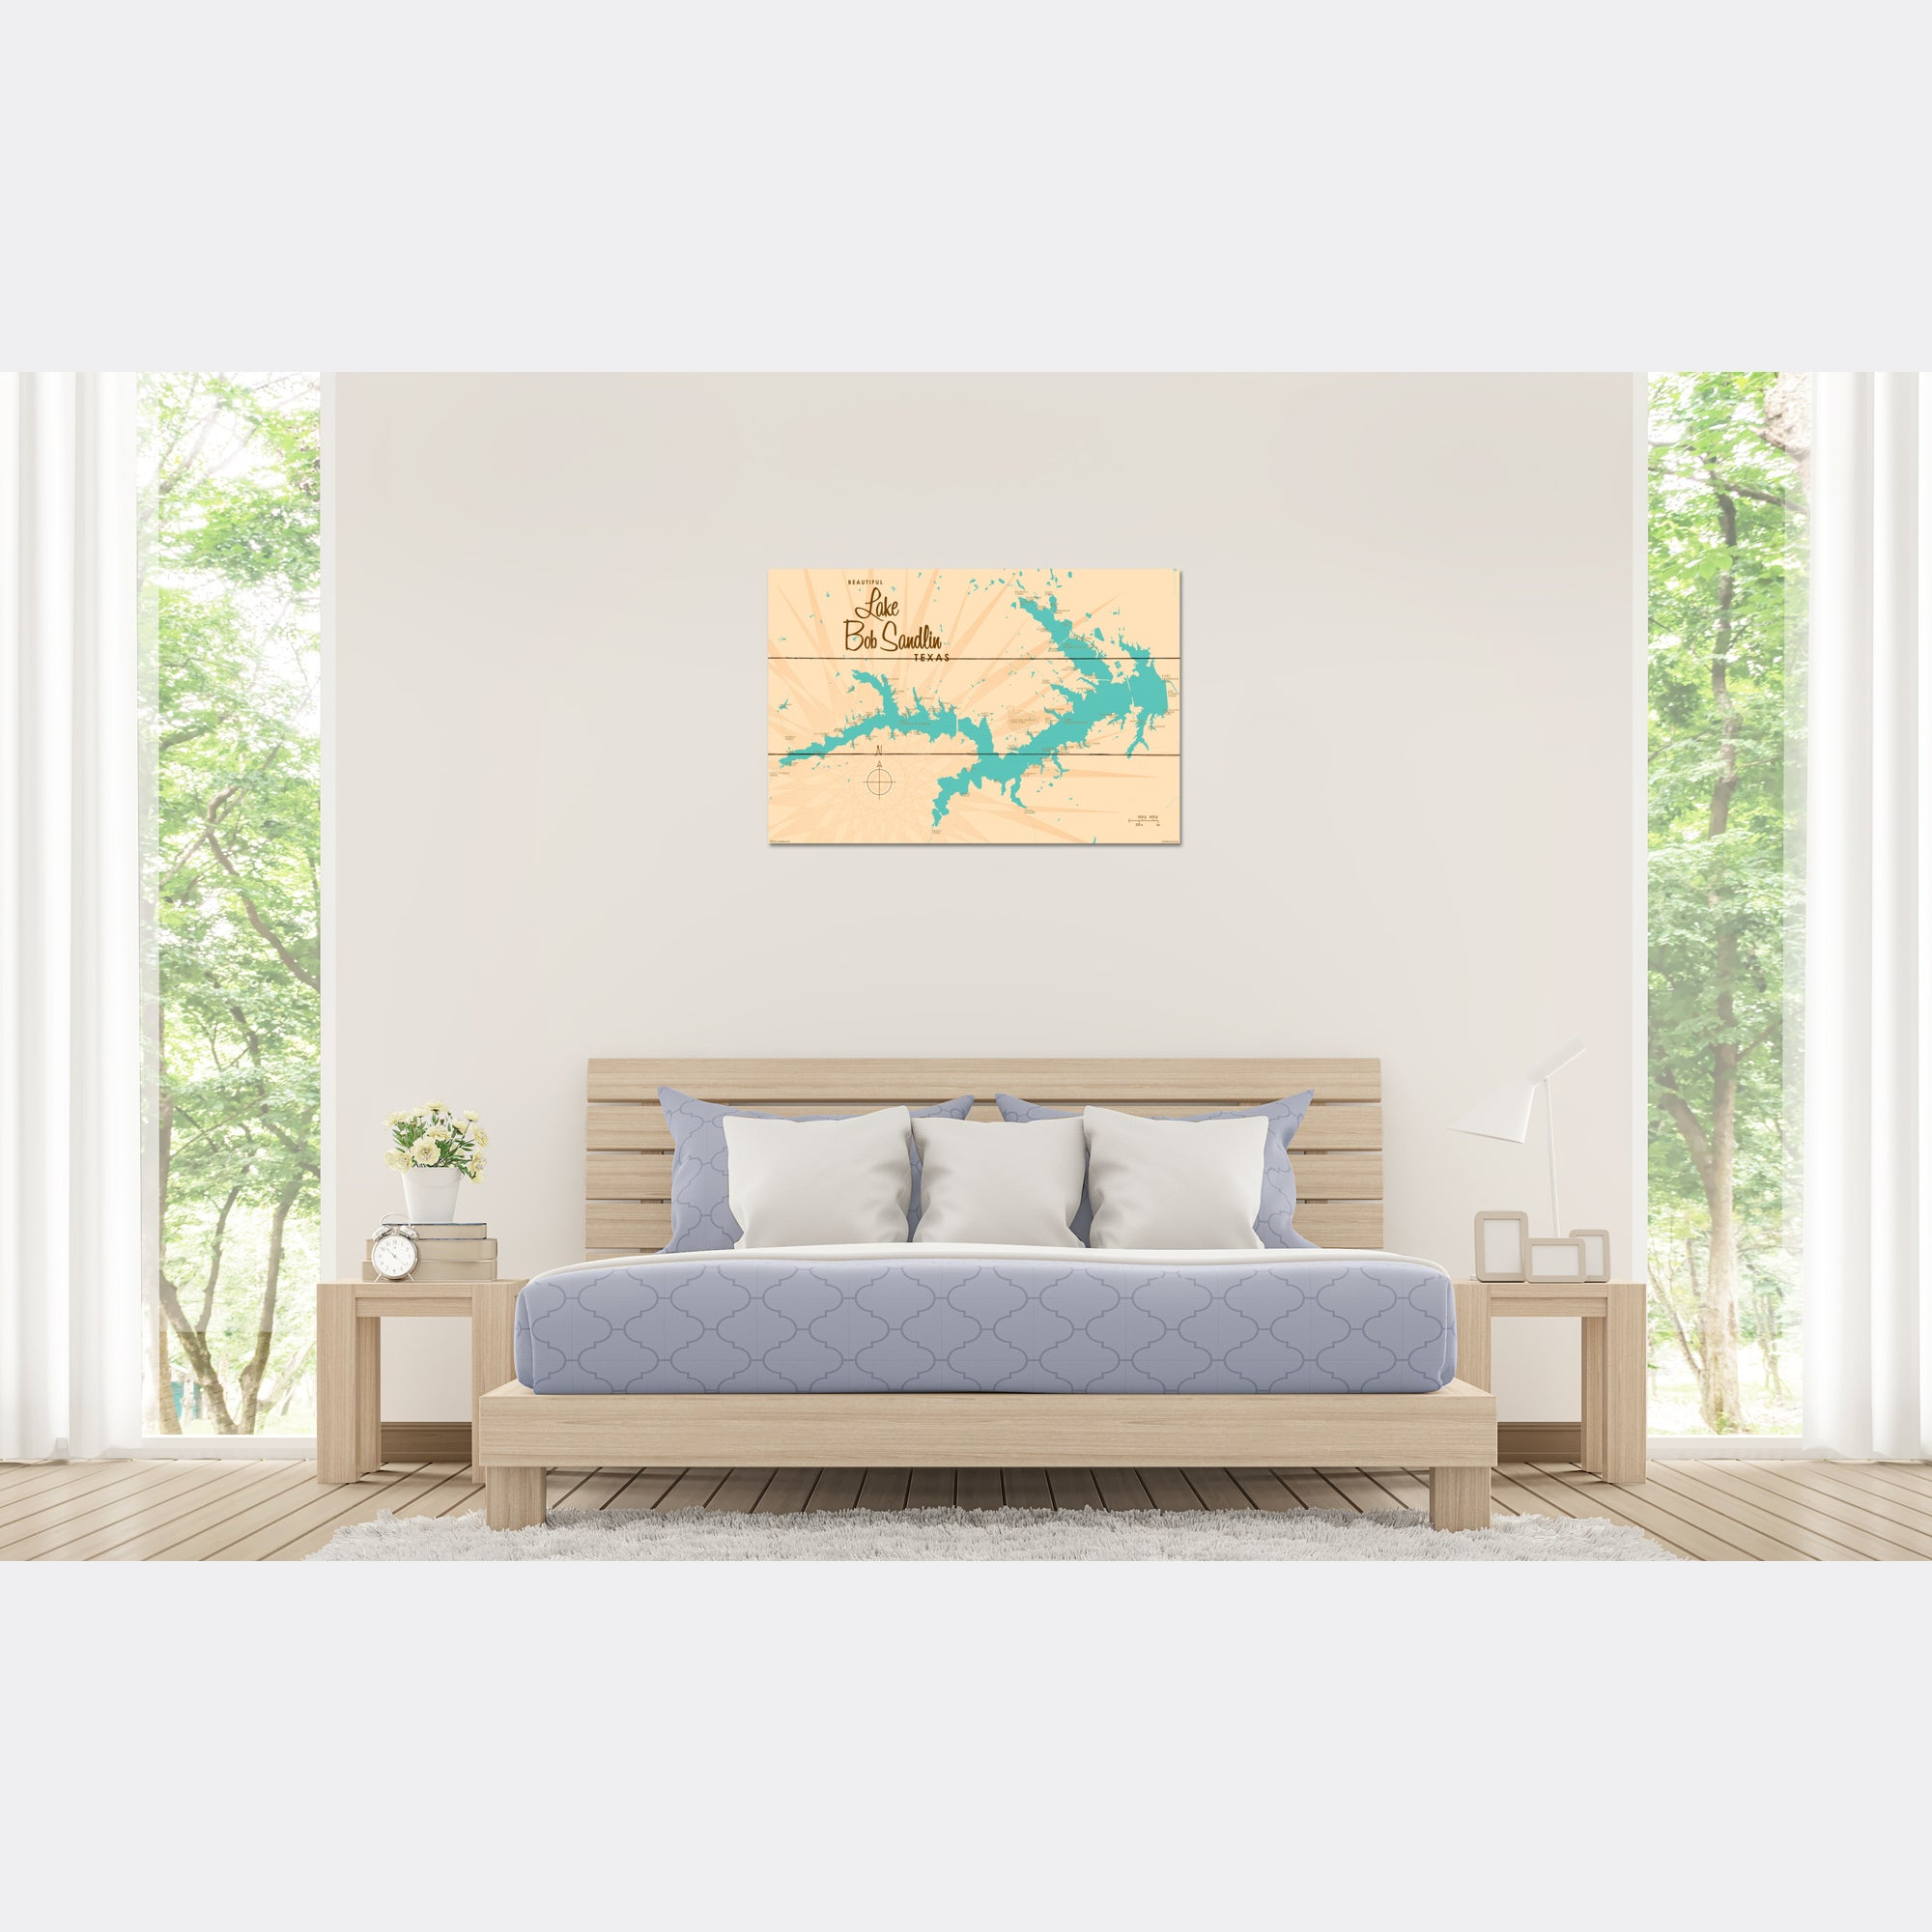 Lake Bob Sandlin Texas, Wood Sign Map Art